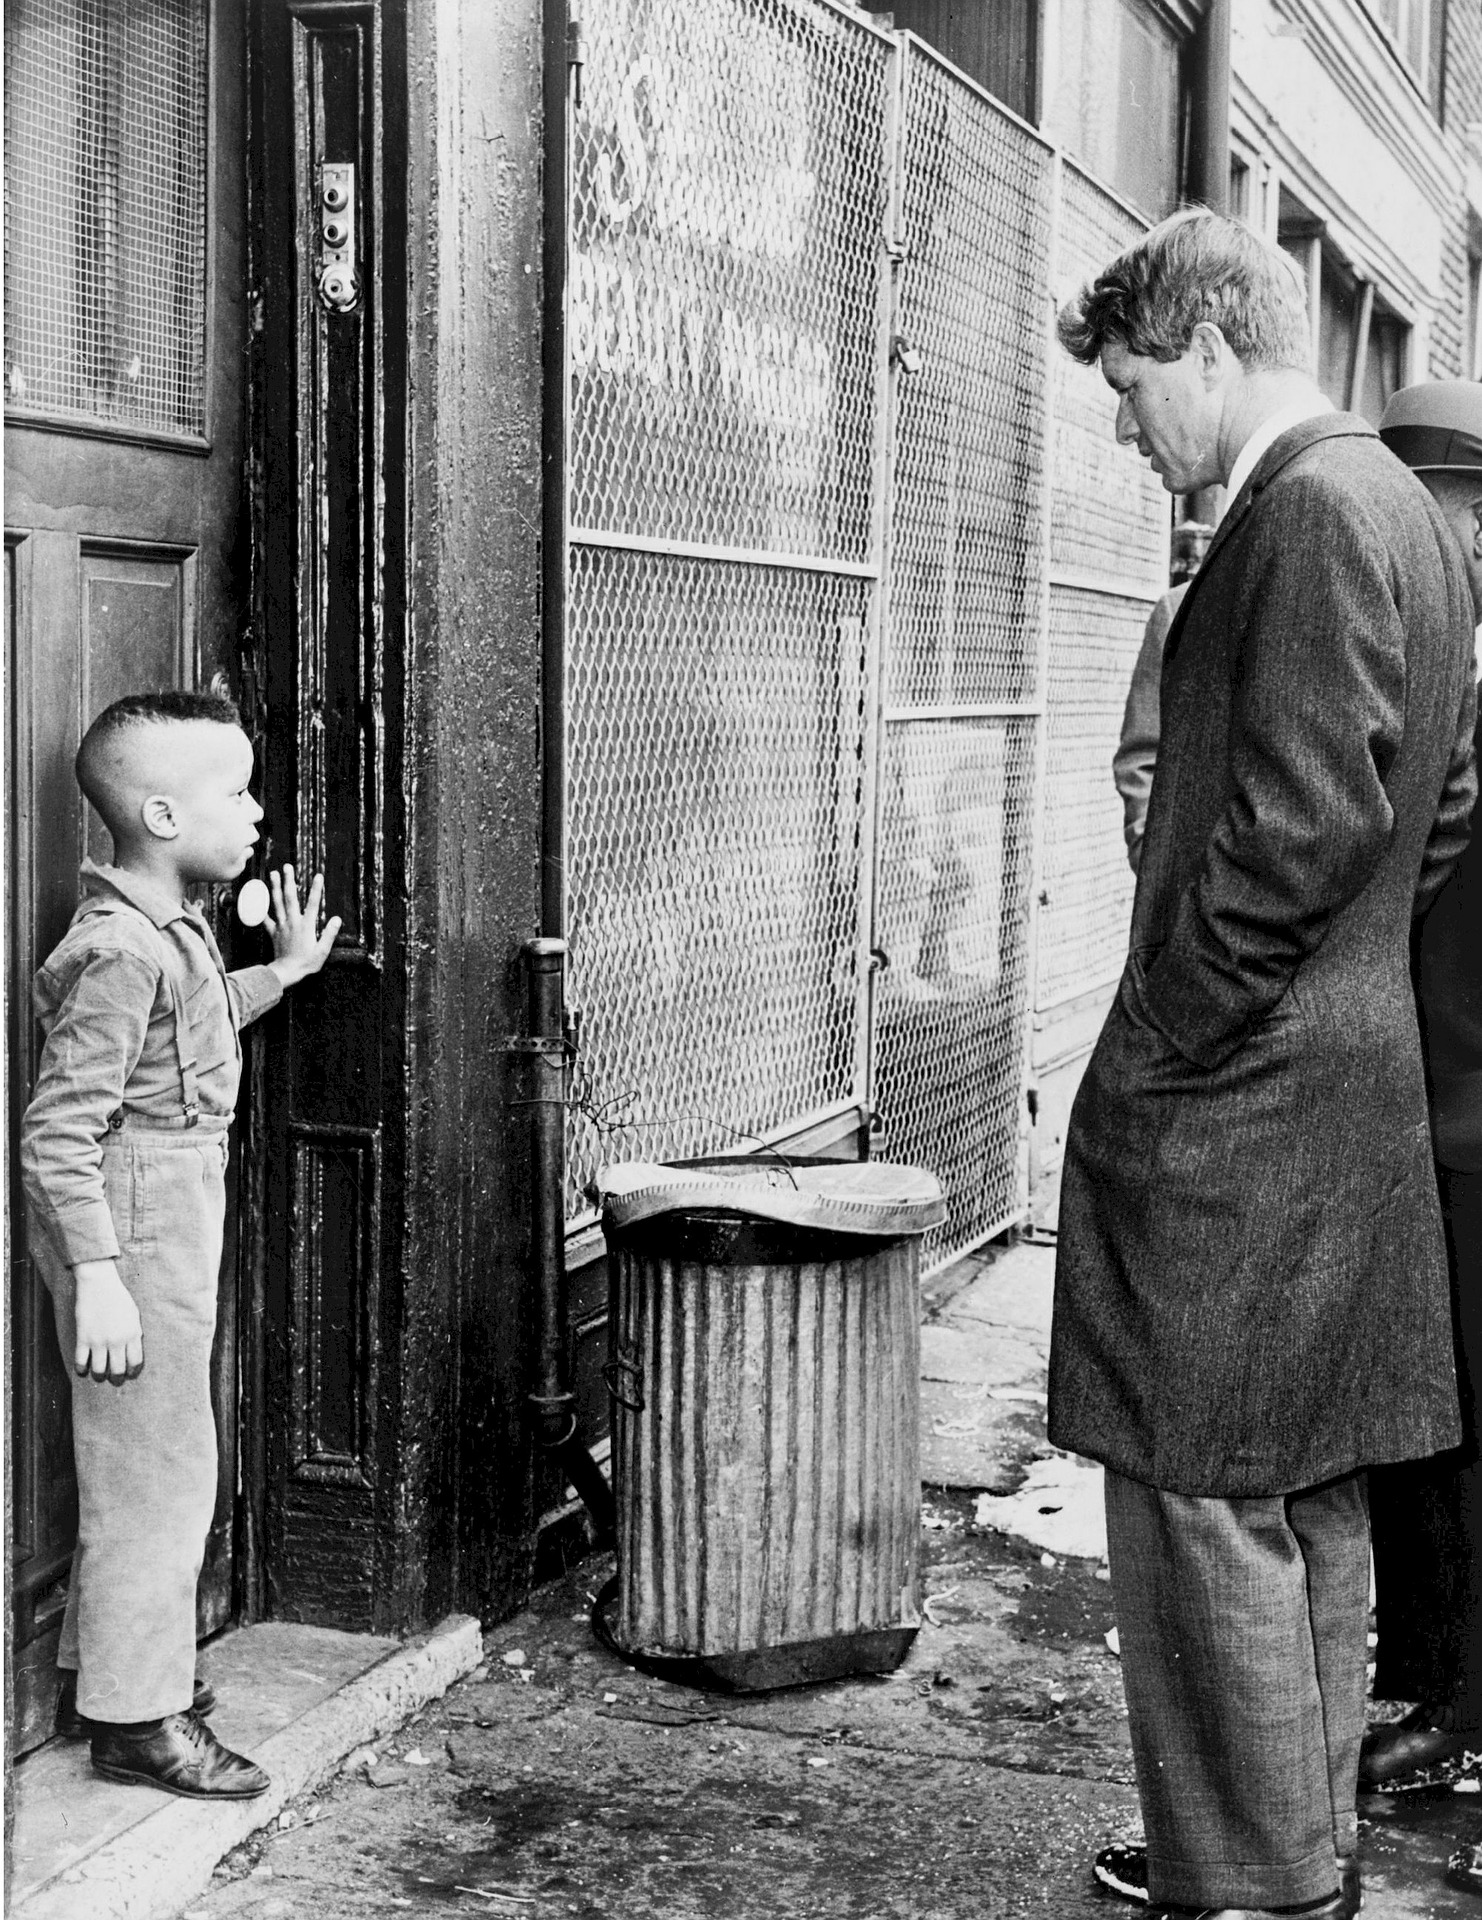 Robert Kennedy talking to young boy in the street.